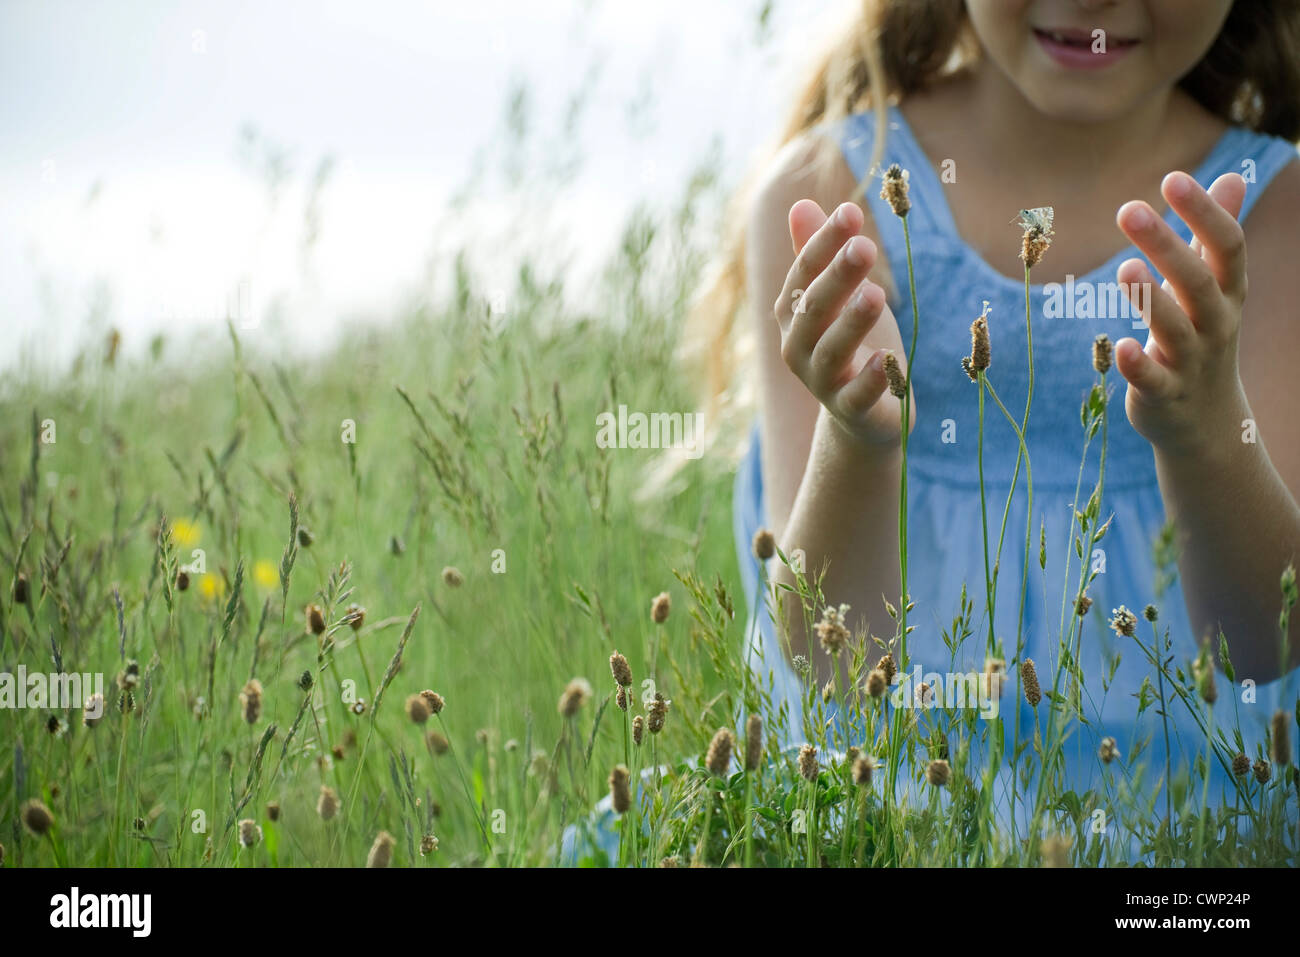 Butterfly on wildflower, girl in background attempting to catch - Stock Image